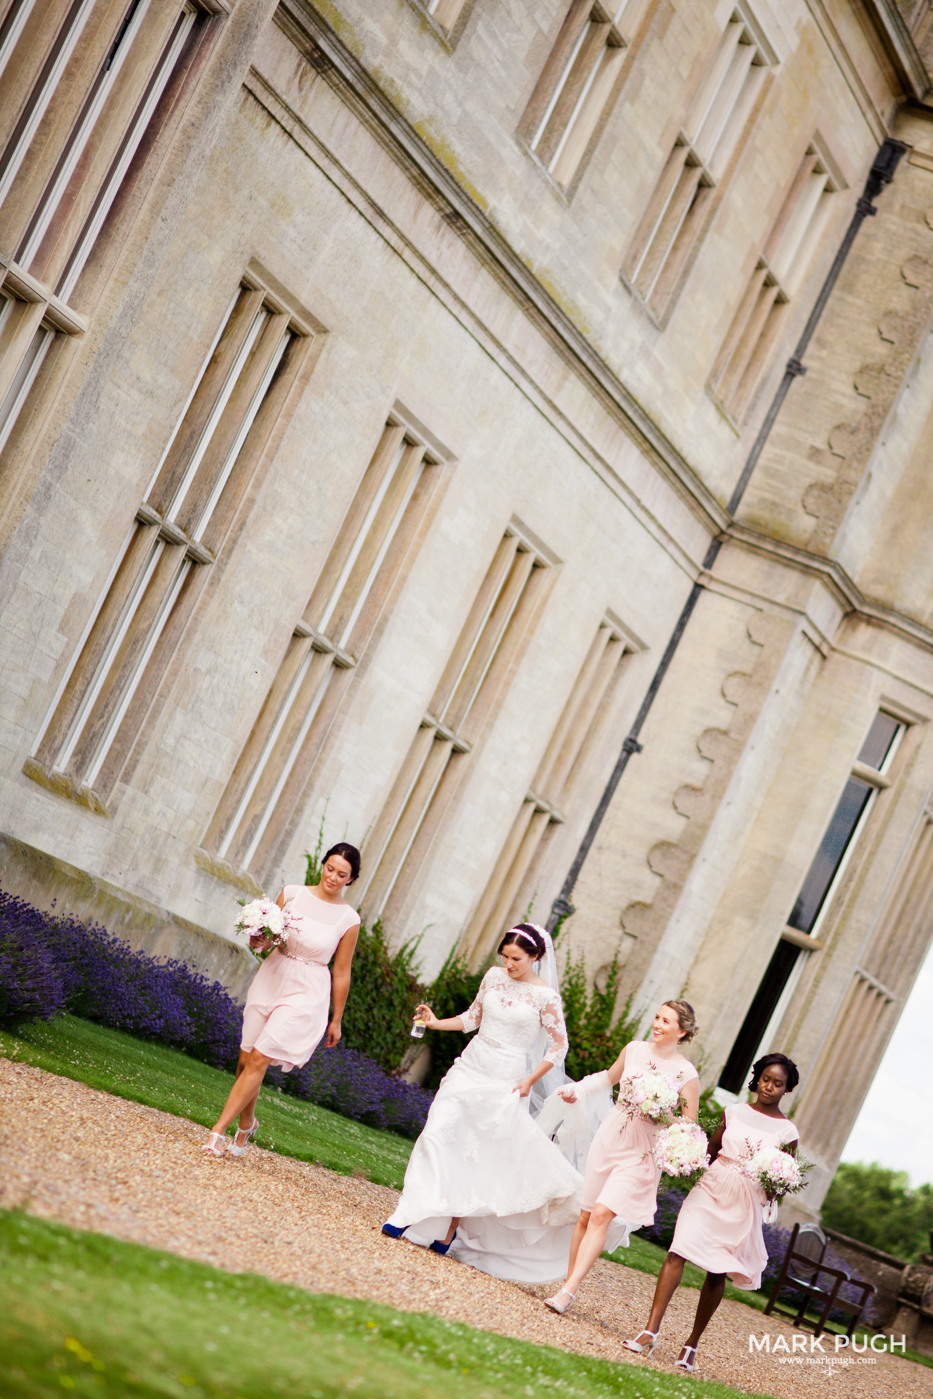 108 Laura and Matt - Stoke Rochford Hall Wedding by Mark Pugh www.markpugh.com - Do not edit or crop this image without consent 2.jpg